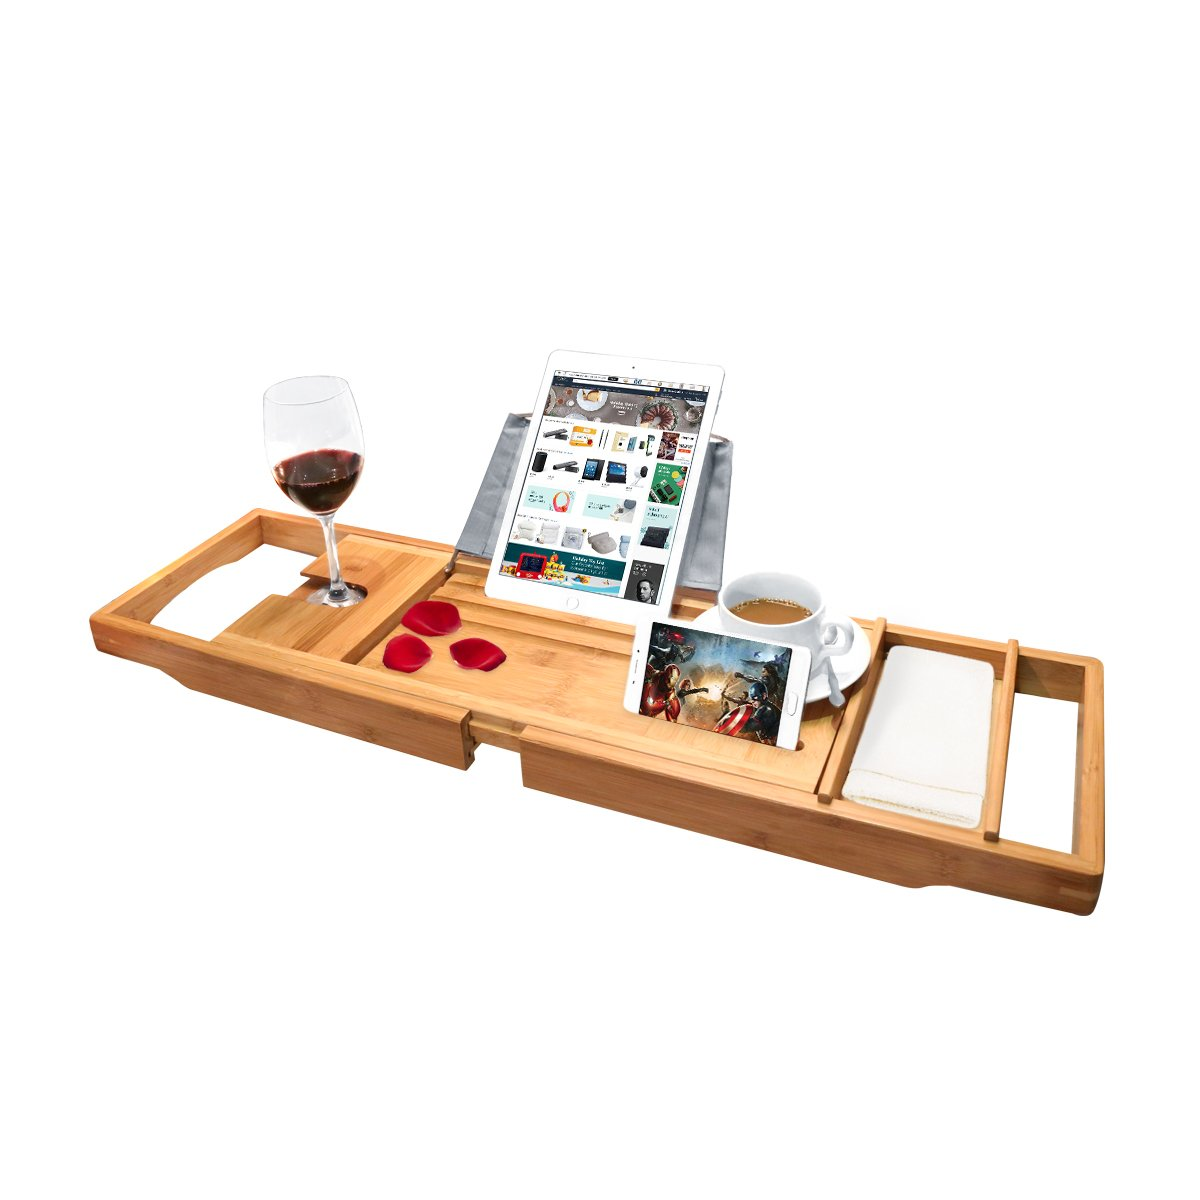 Bamboo Bathtub Caddy Tray with Extending Sides, Tablet Holder, Cellphone Tray, Wine Glass Holder & Shower Organizer- One or Two Person Bath - Fit Any Tub for Home Spa CoastaCloud